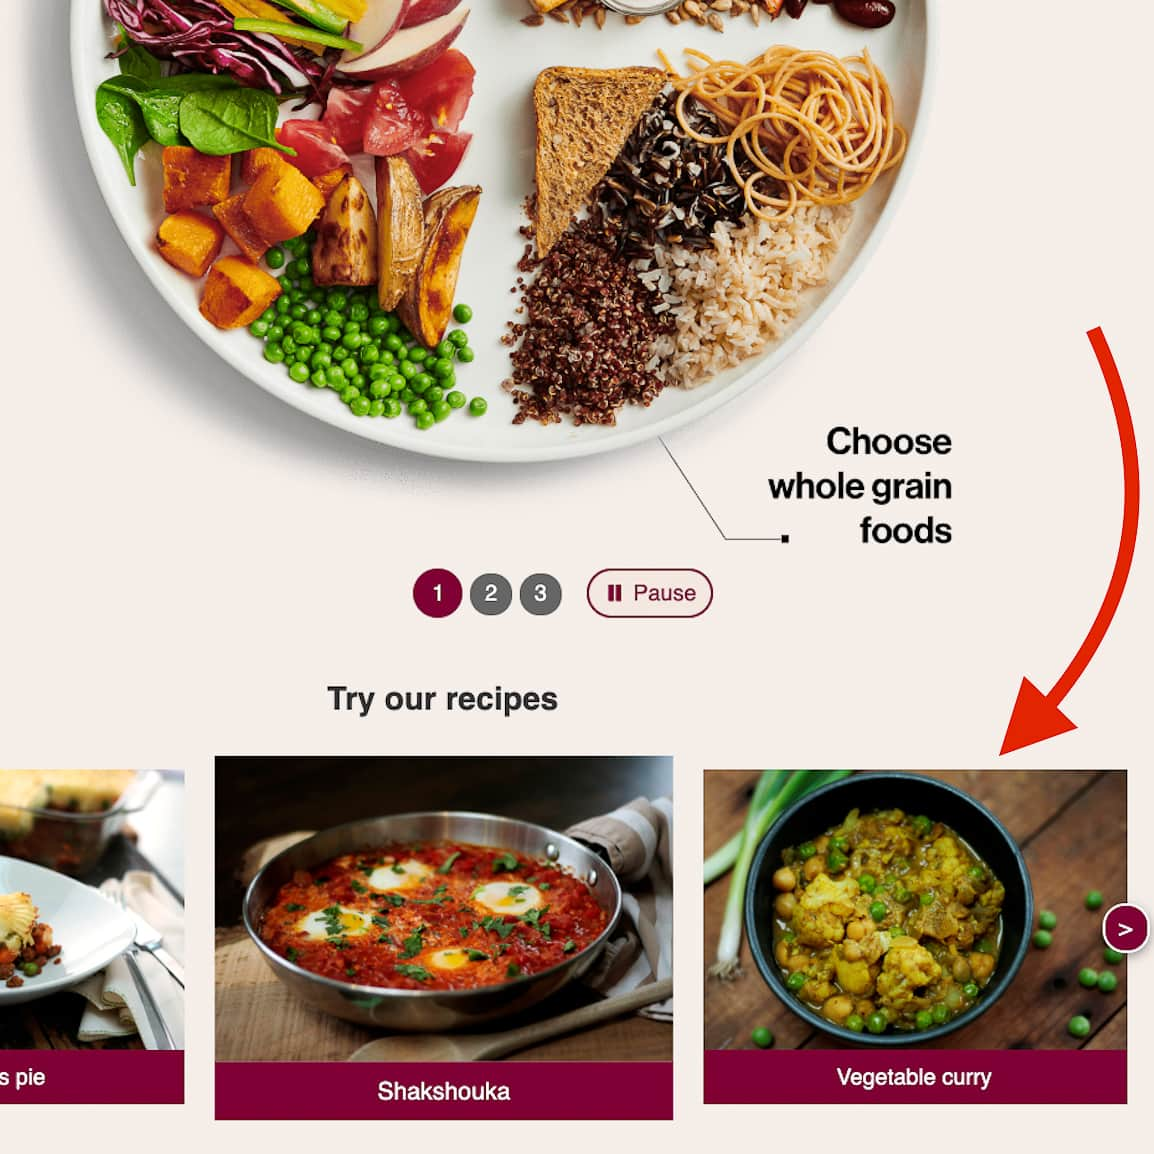 Canada's Food Guide plate with vegetables and grains with recipe images underneath